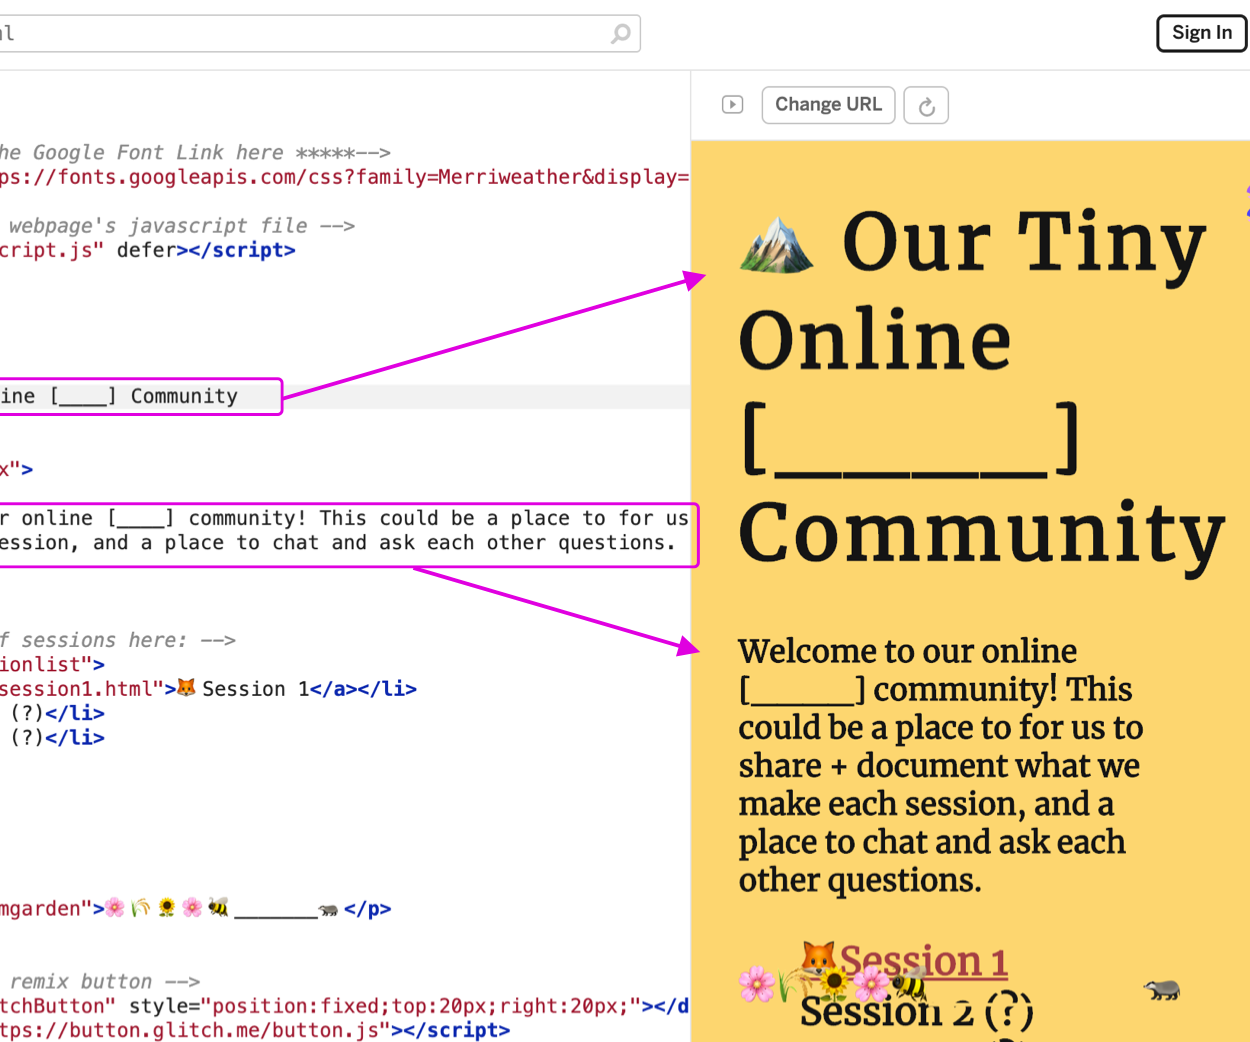 Creating Your Own Tiny Online Community